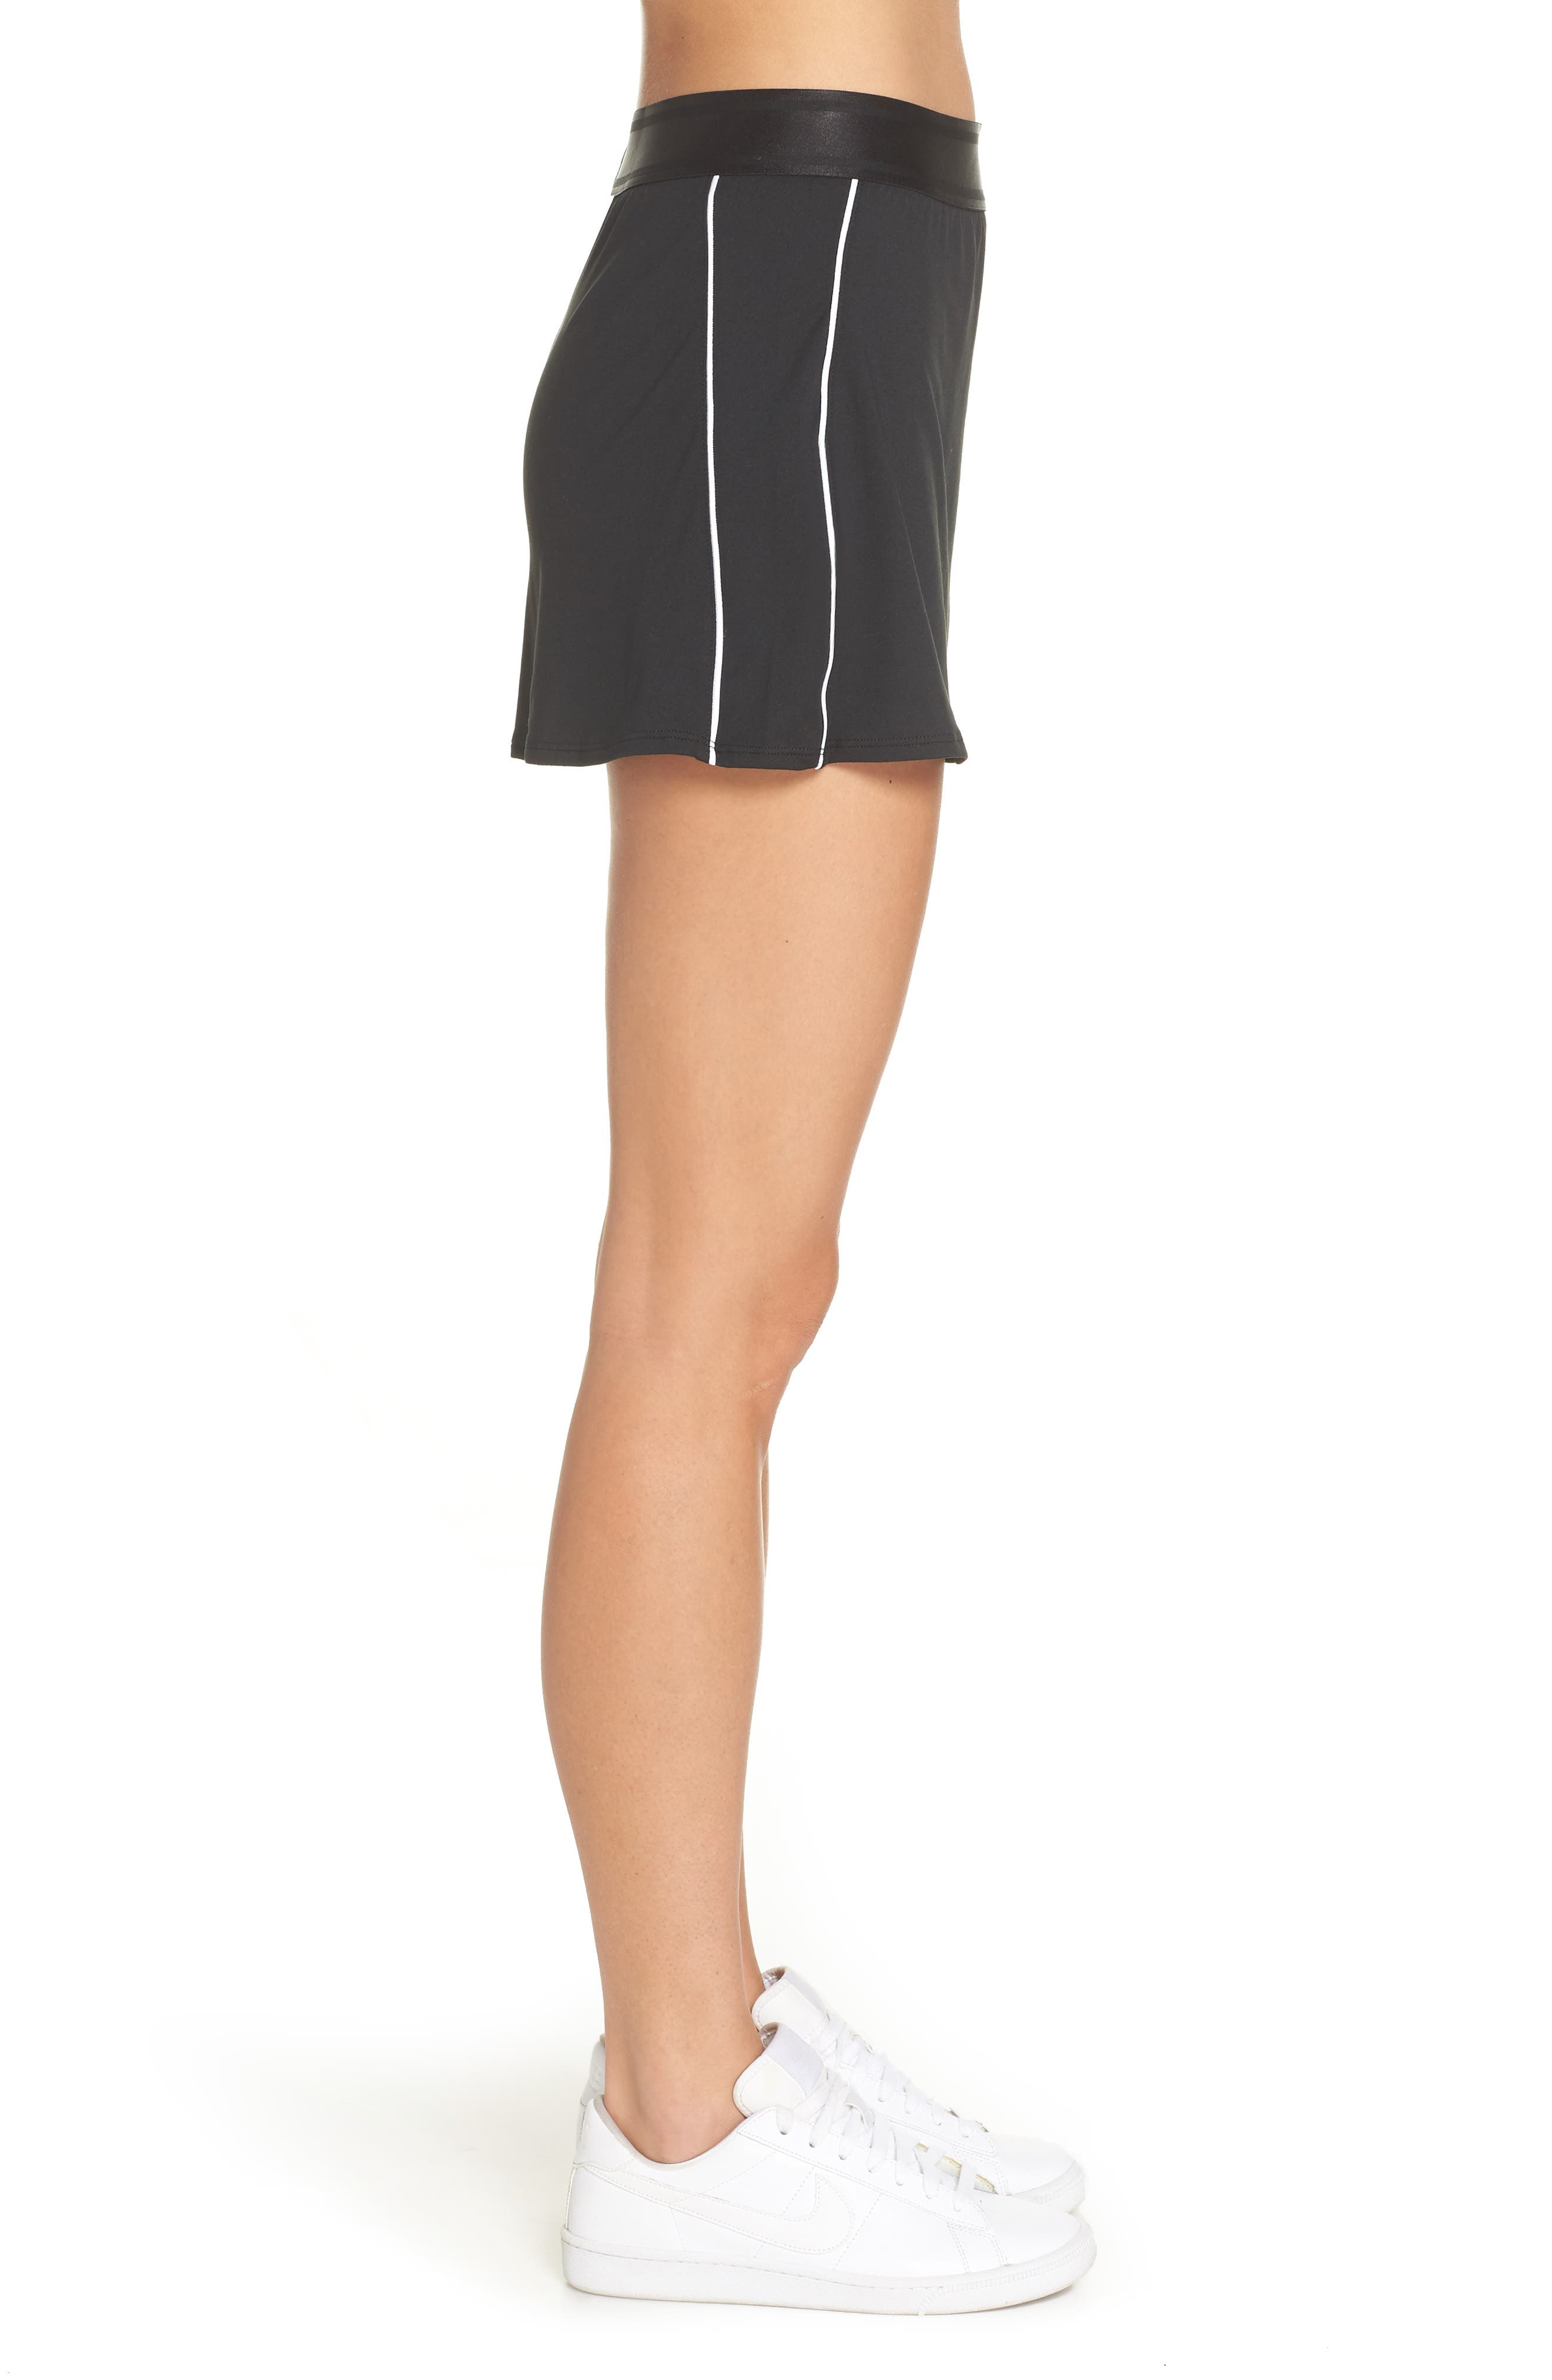 NIKE, Court Dry-FIT Tennis Skirt, Alternate thumbnail 4, color, BLACK/ WHITE/ WHITE/ BLACK